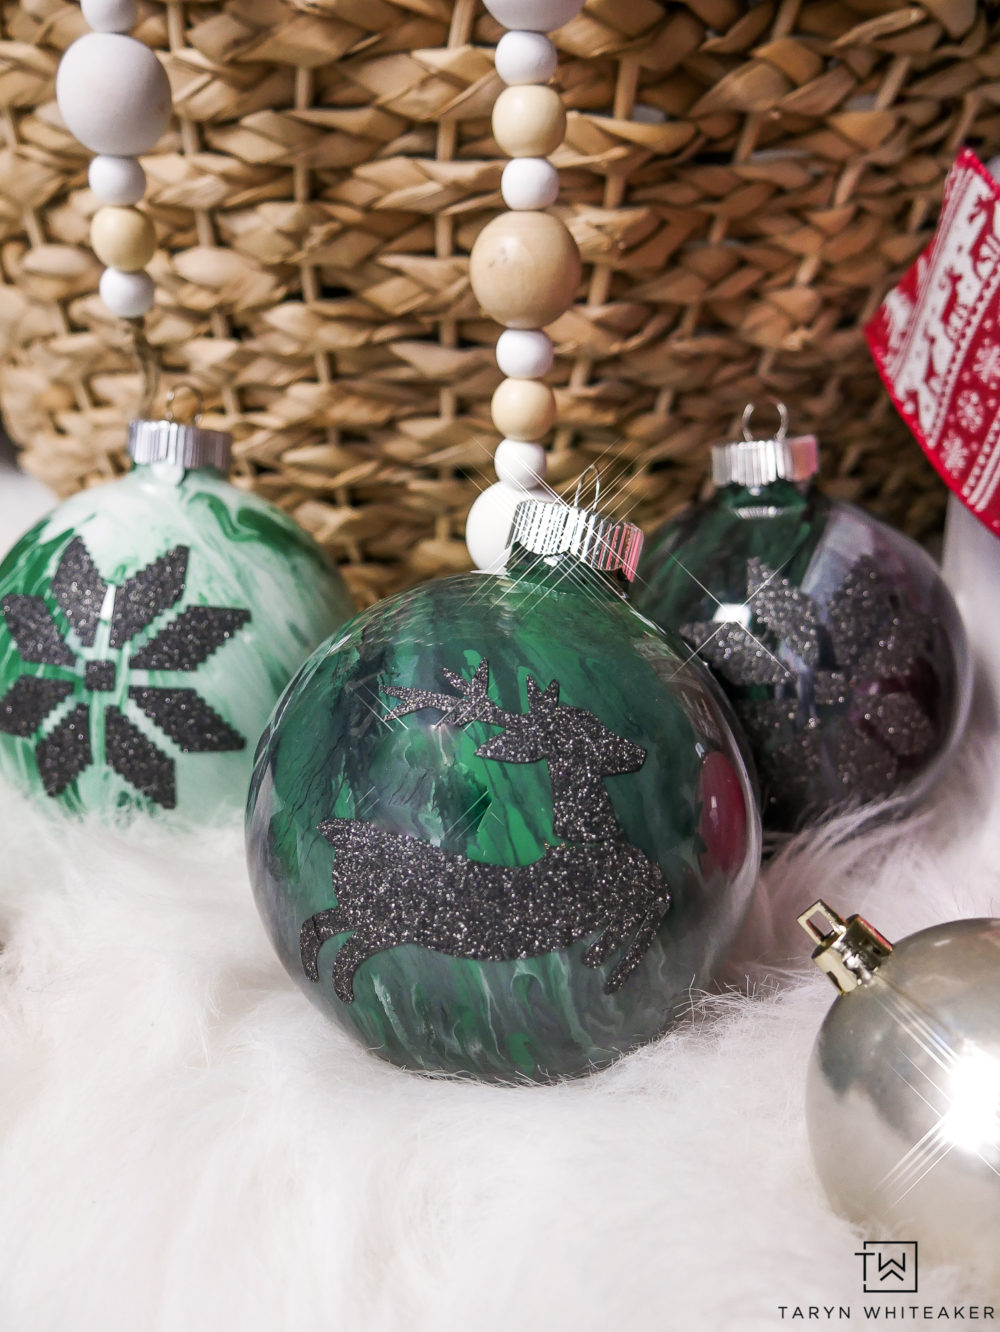 Green and Black Marbled Paint Ornaments! Love how these Ornaments are personalized with glitter vinyl!